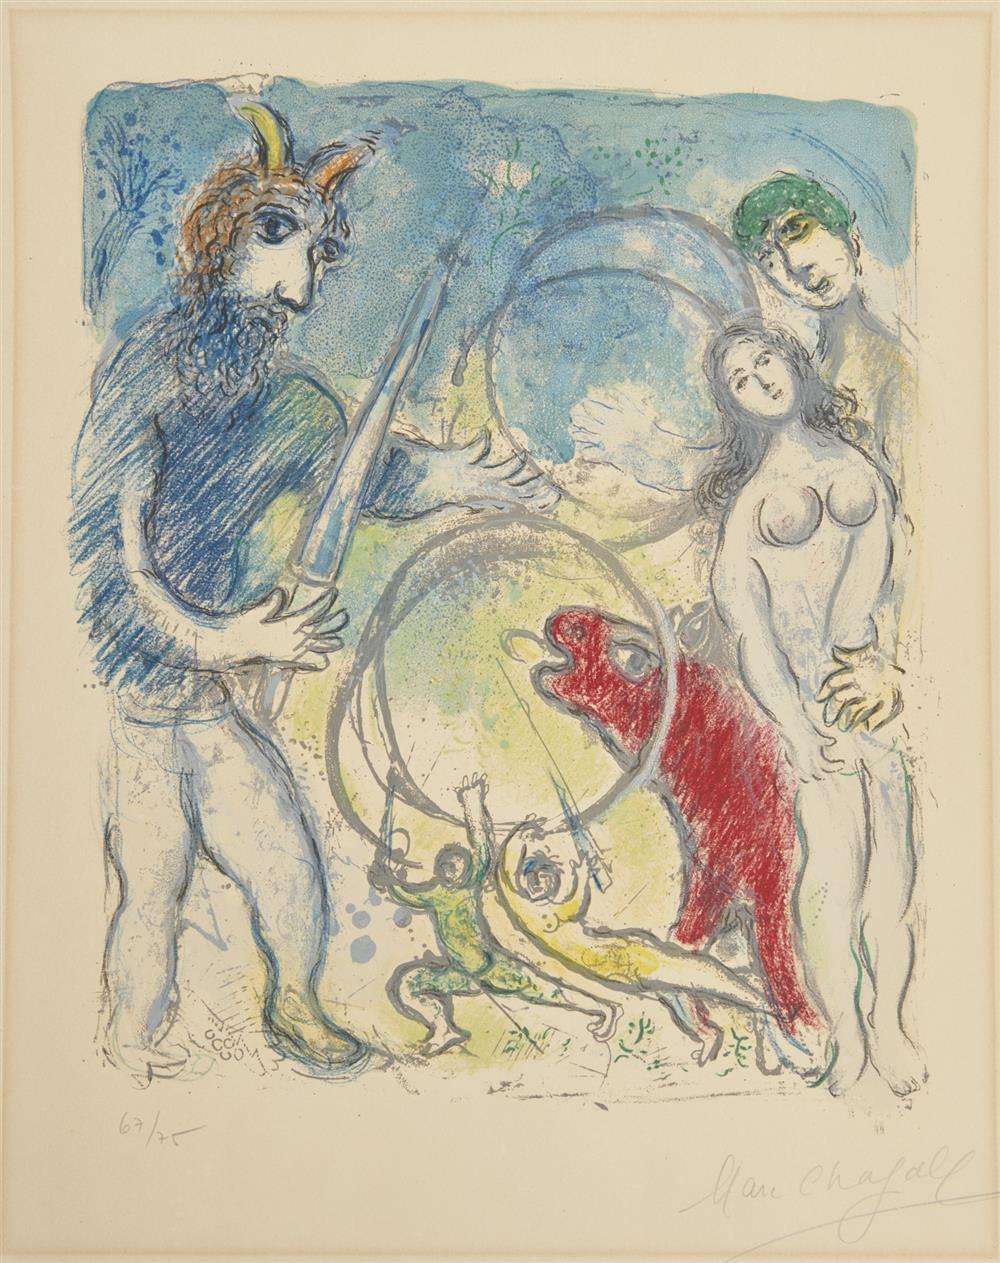 MARC CHAGALL, (French, 1887-1985), A la femme, qu'est-il rest..., from the series Sur la terre des dieux (In the land of the gods), lithograph on Arches paper, sheet: 25 1/2 x 19 1/2 in.